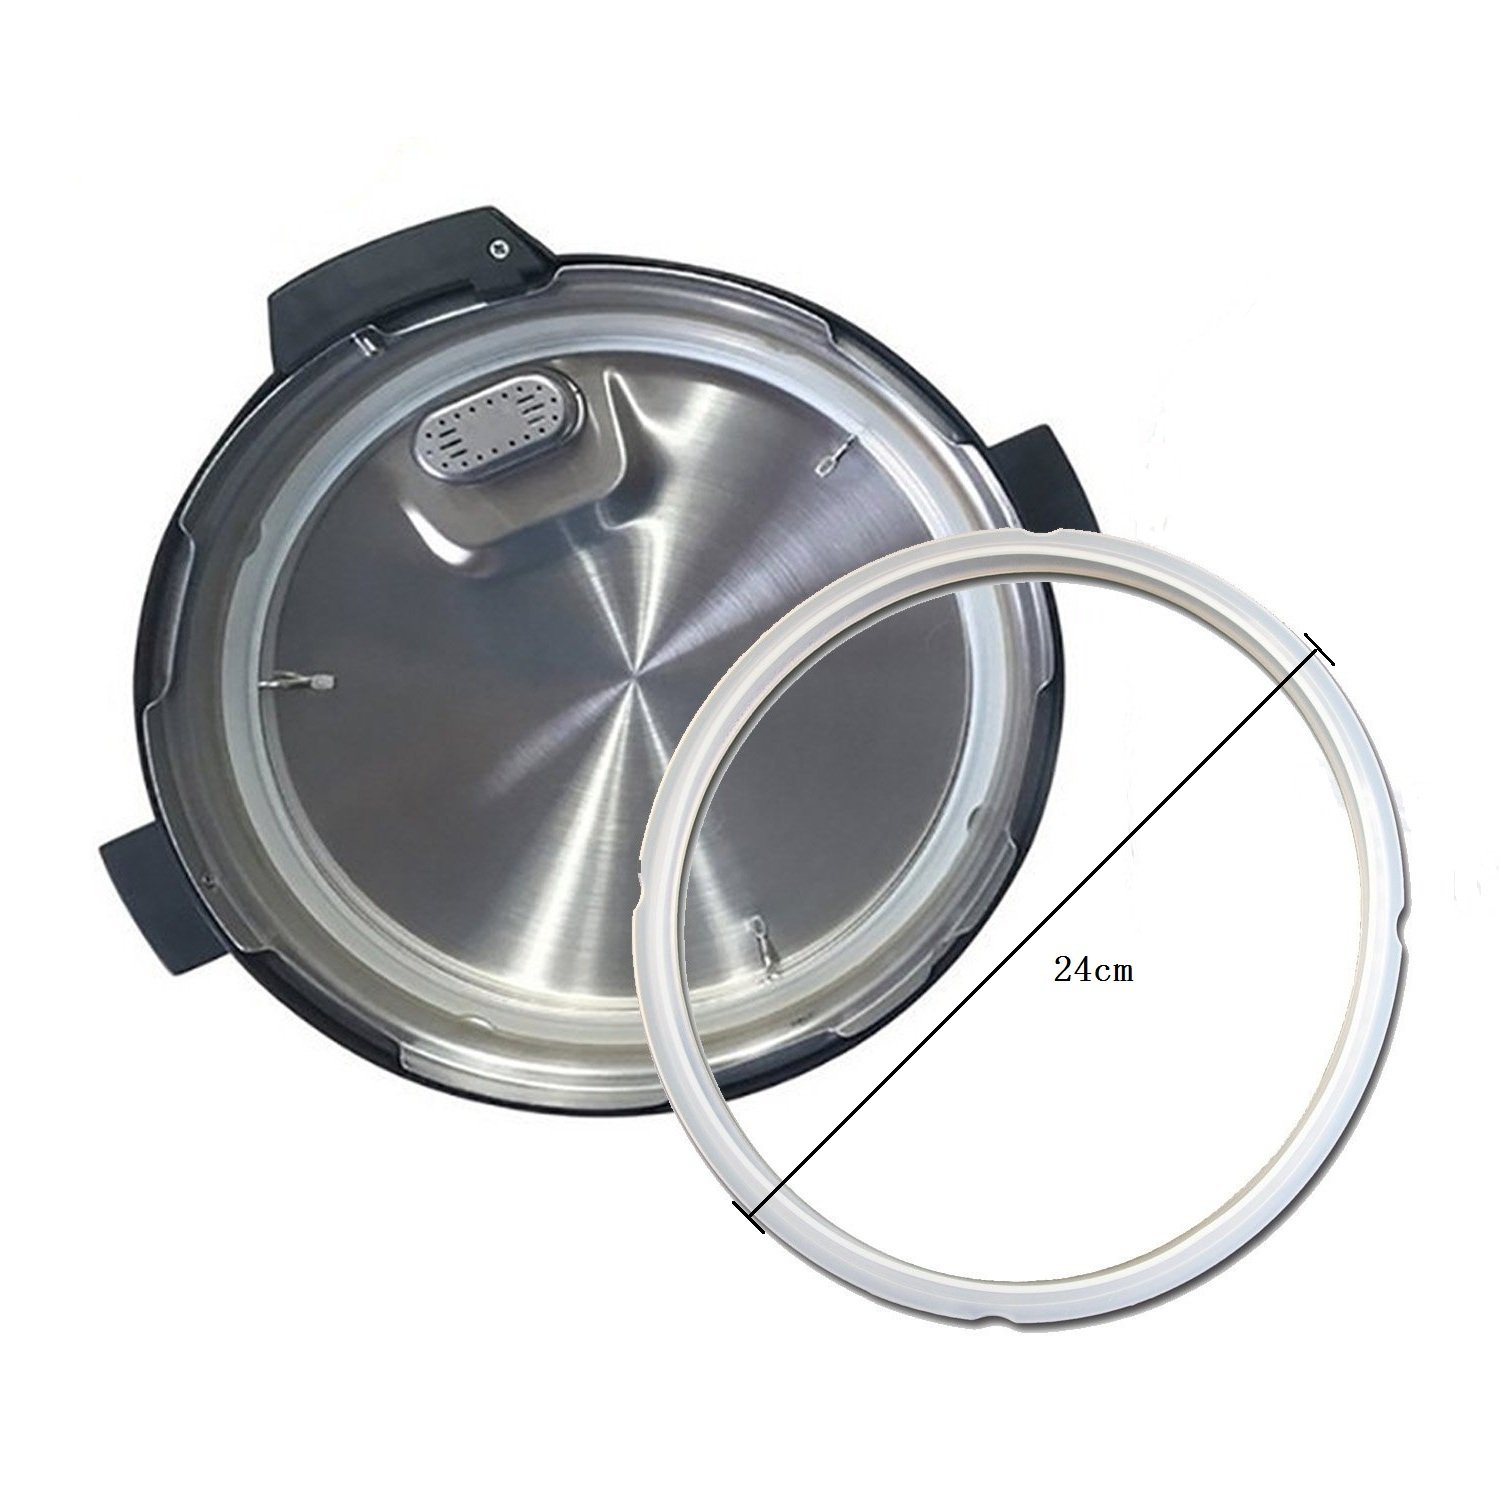 Universal Replacement Floater and Sealing Ring for Pressure Cookers,Power Pressure Cooker Accessory Mity Rain SYNCHKG131085